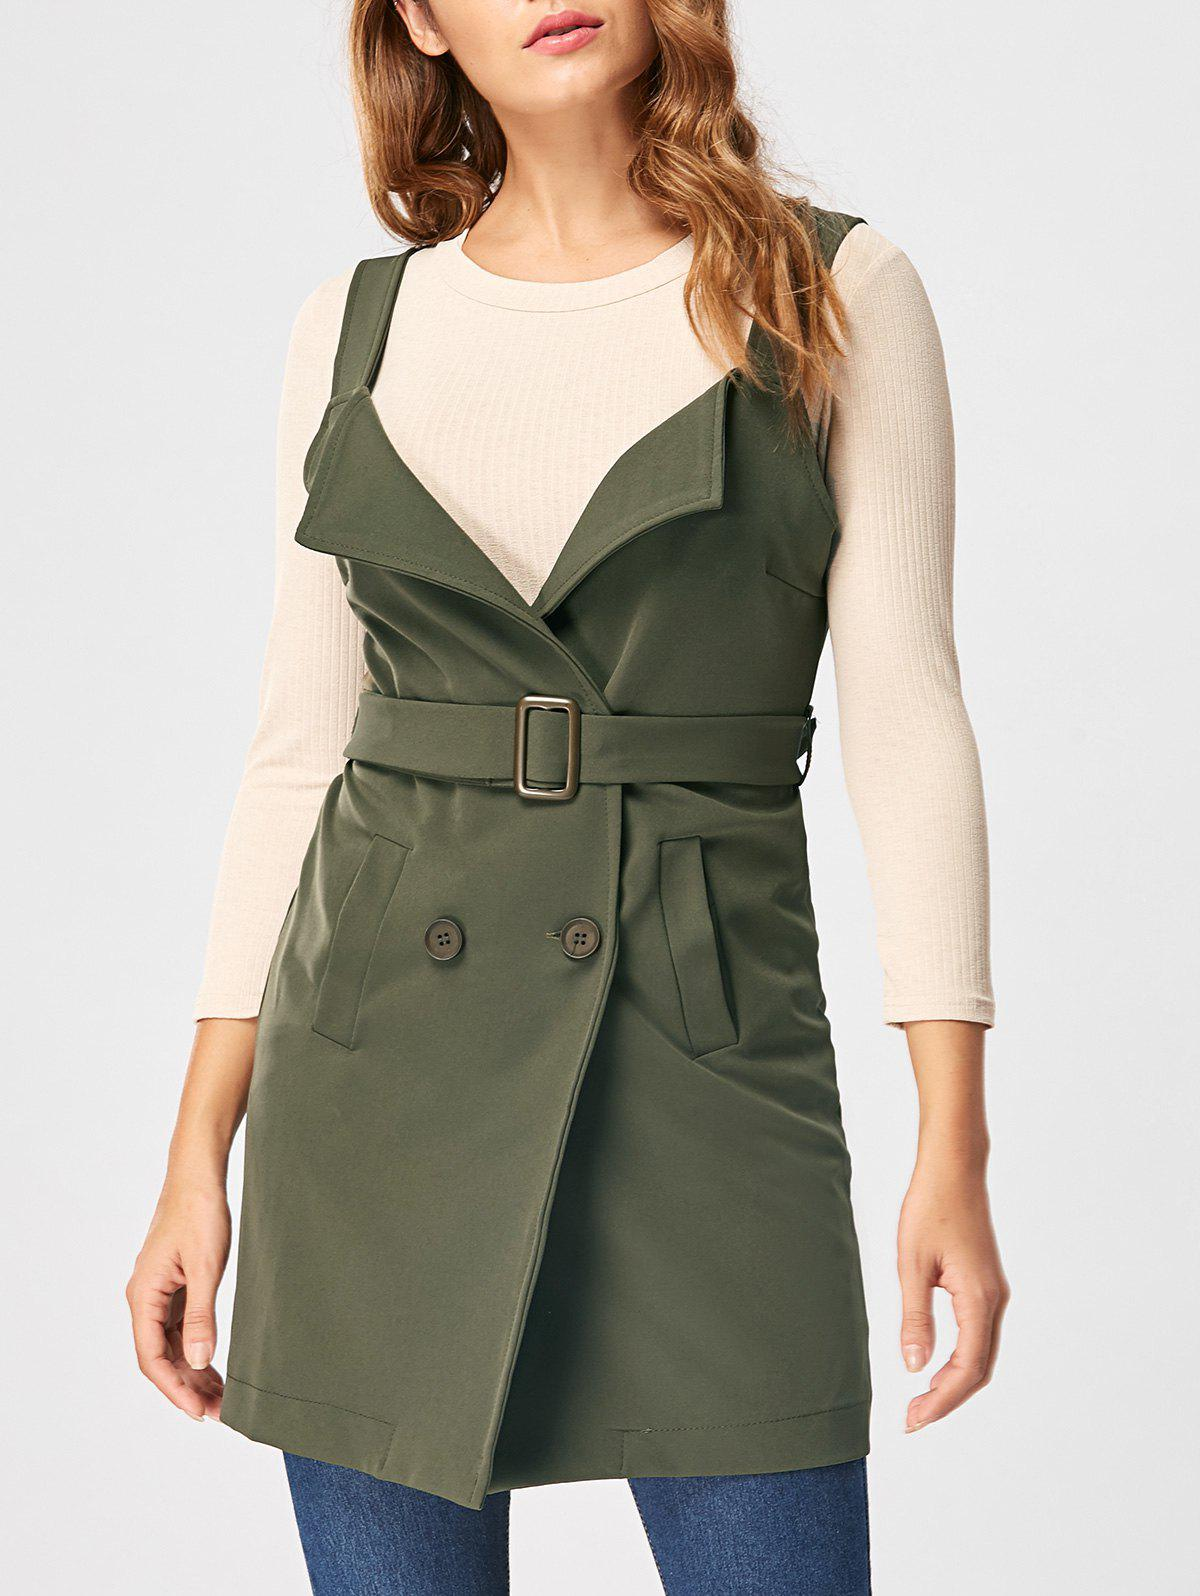 Vertical Pockets Waistcoat with Belt - ARMY GREEN 2XL